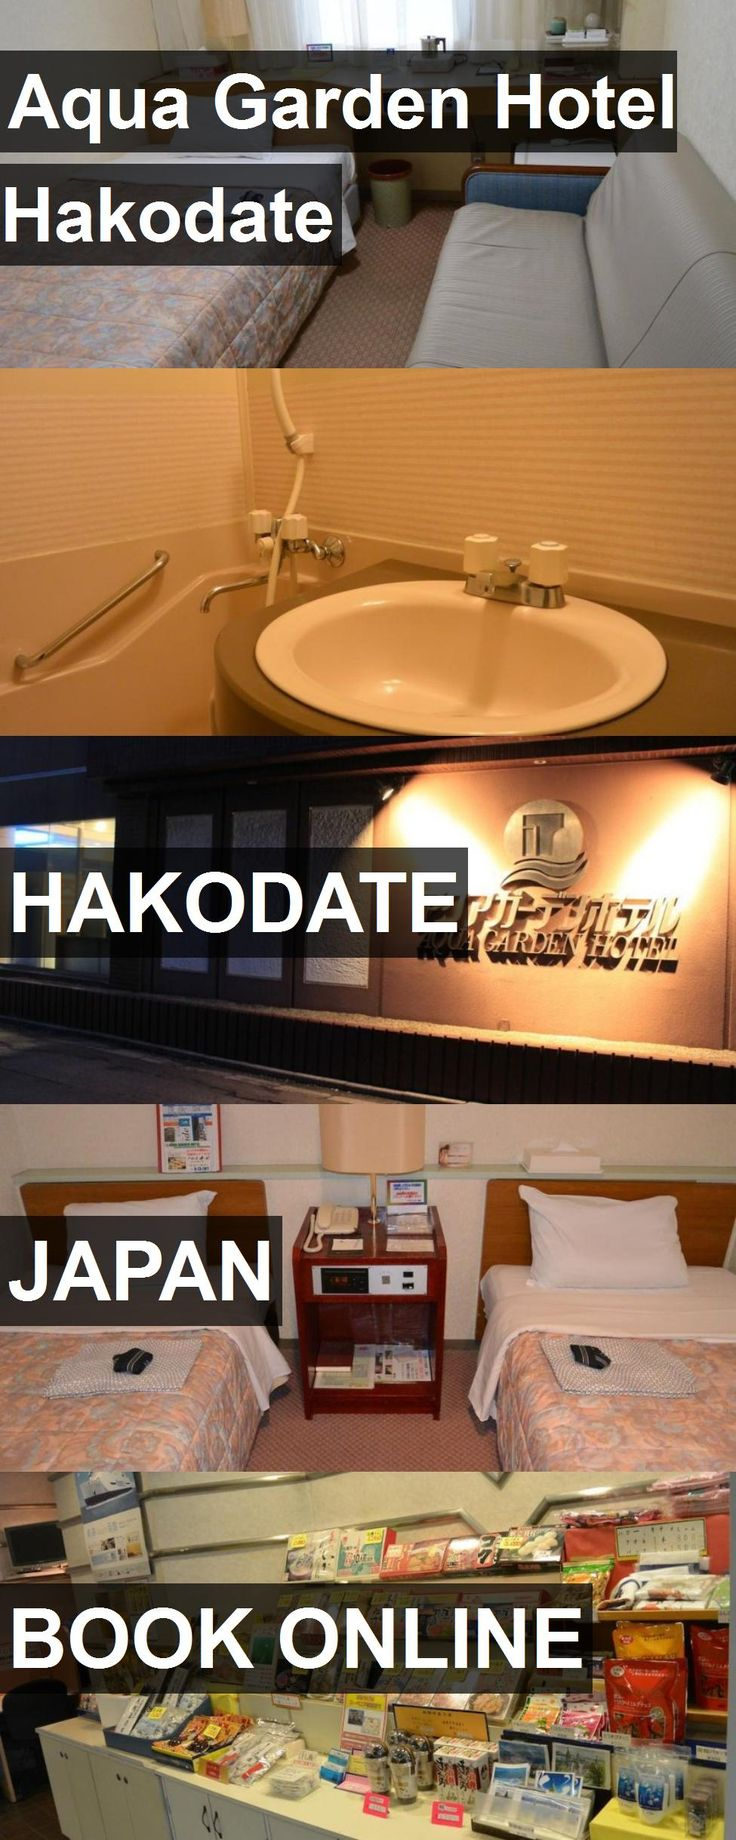 Aqua Garden Hotel Hakodate in Hakodate, Japan. For more information, photos, reviews and best prices please follow the link. #Japan #Hakodate #travel #vacation #hotel